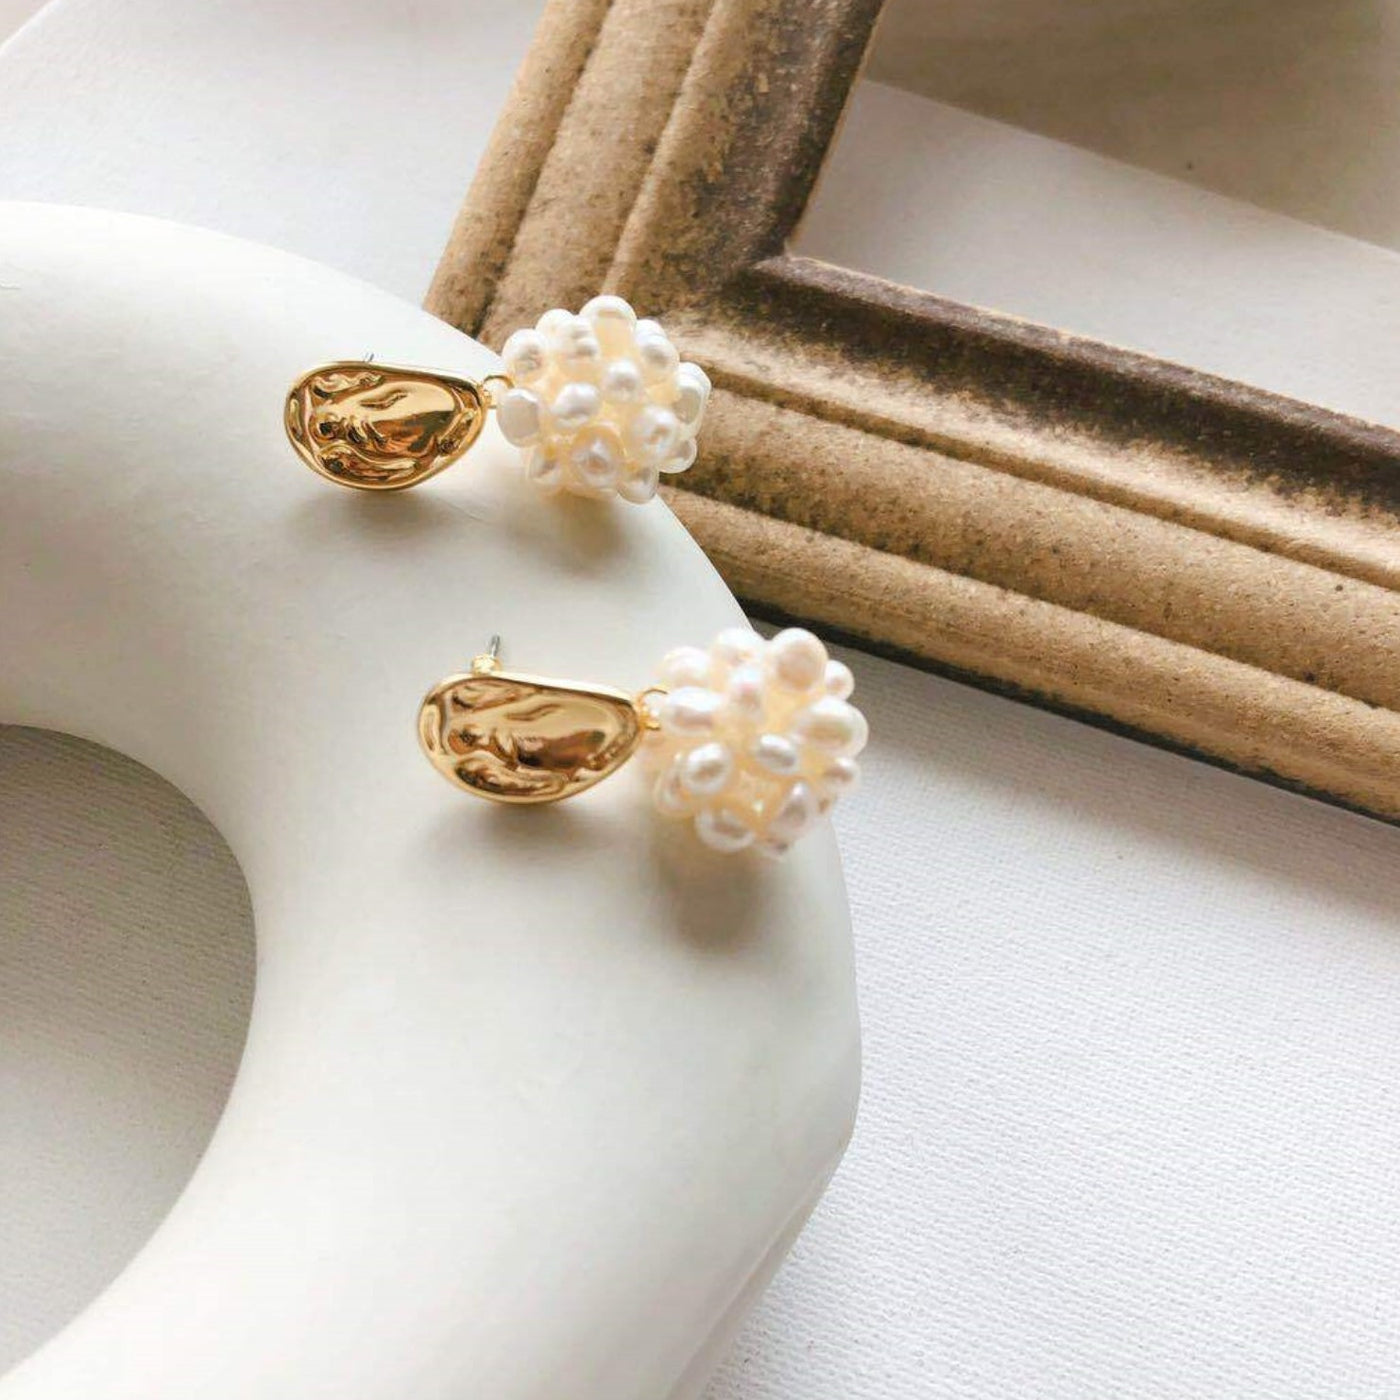 Golden pearl drop earrings displayed on light background